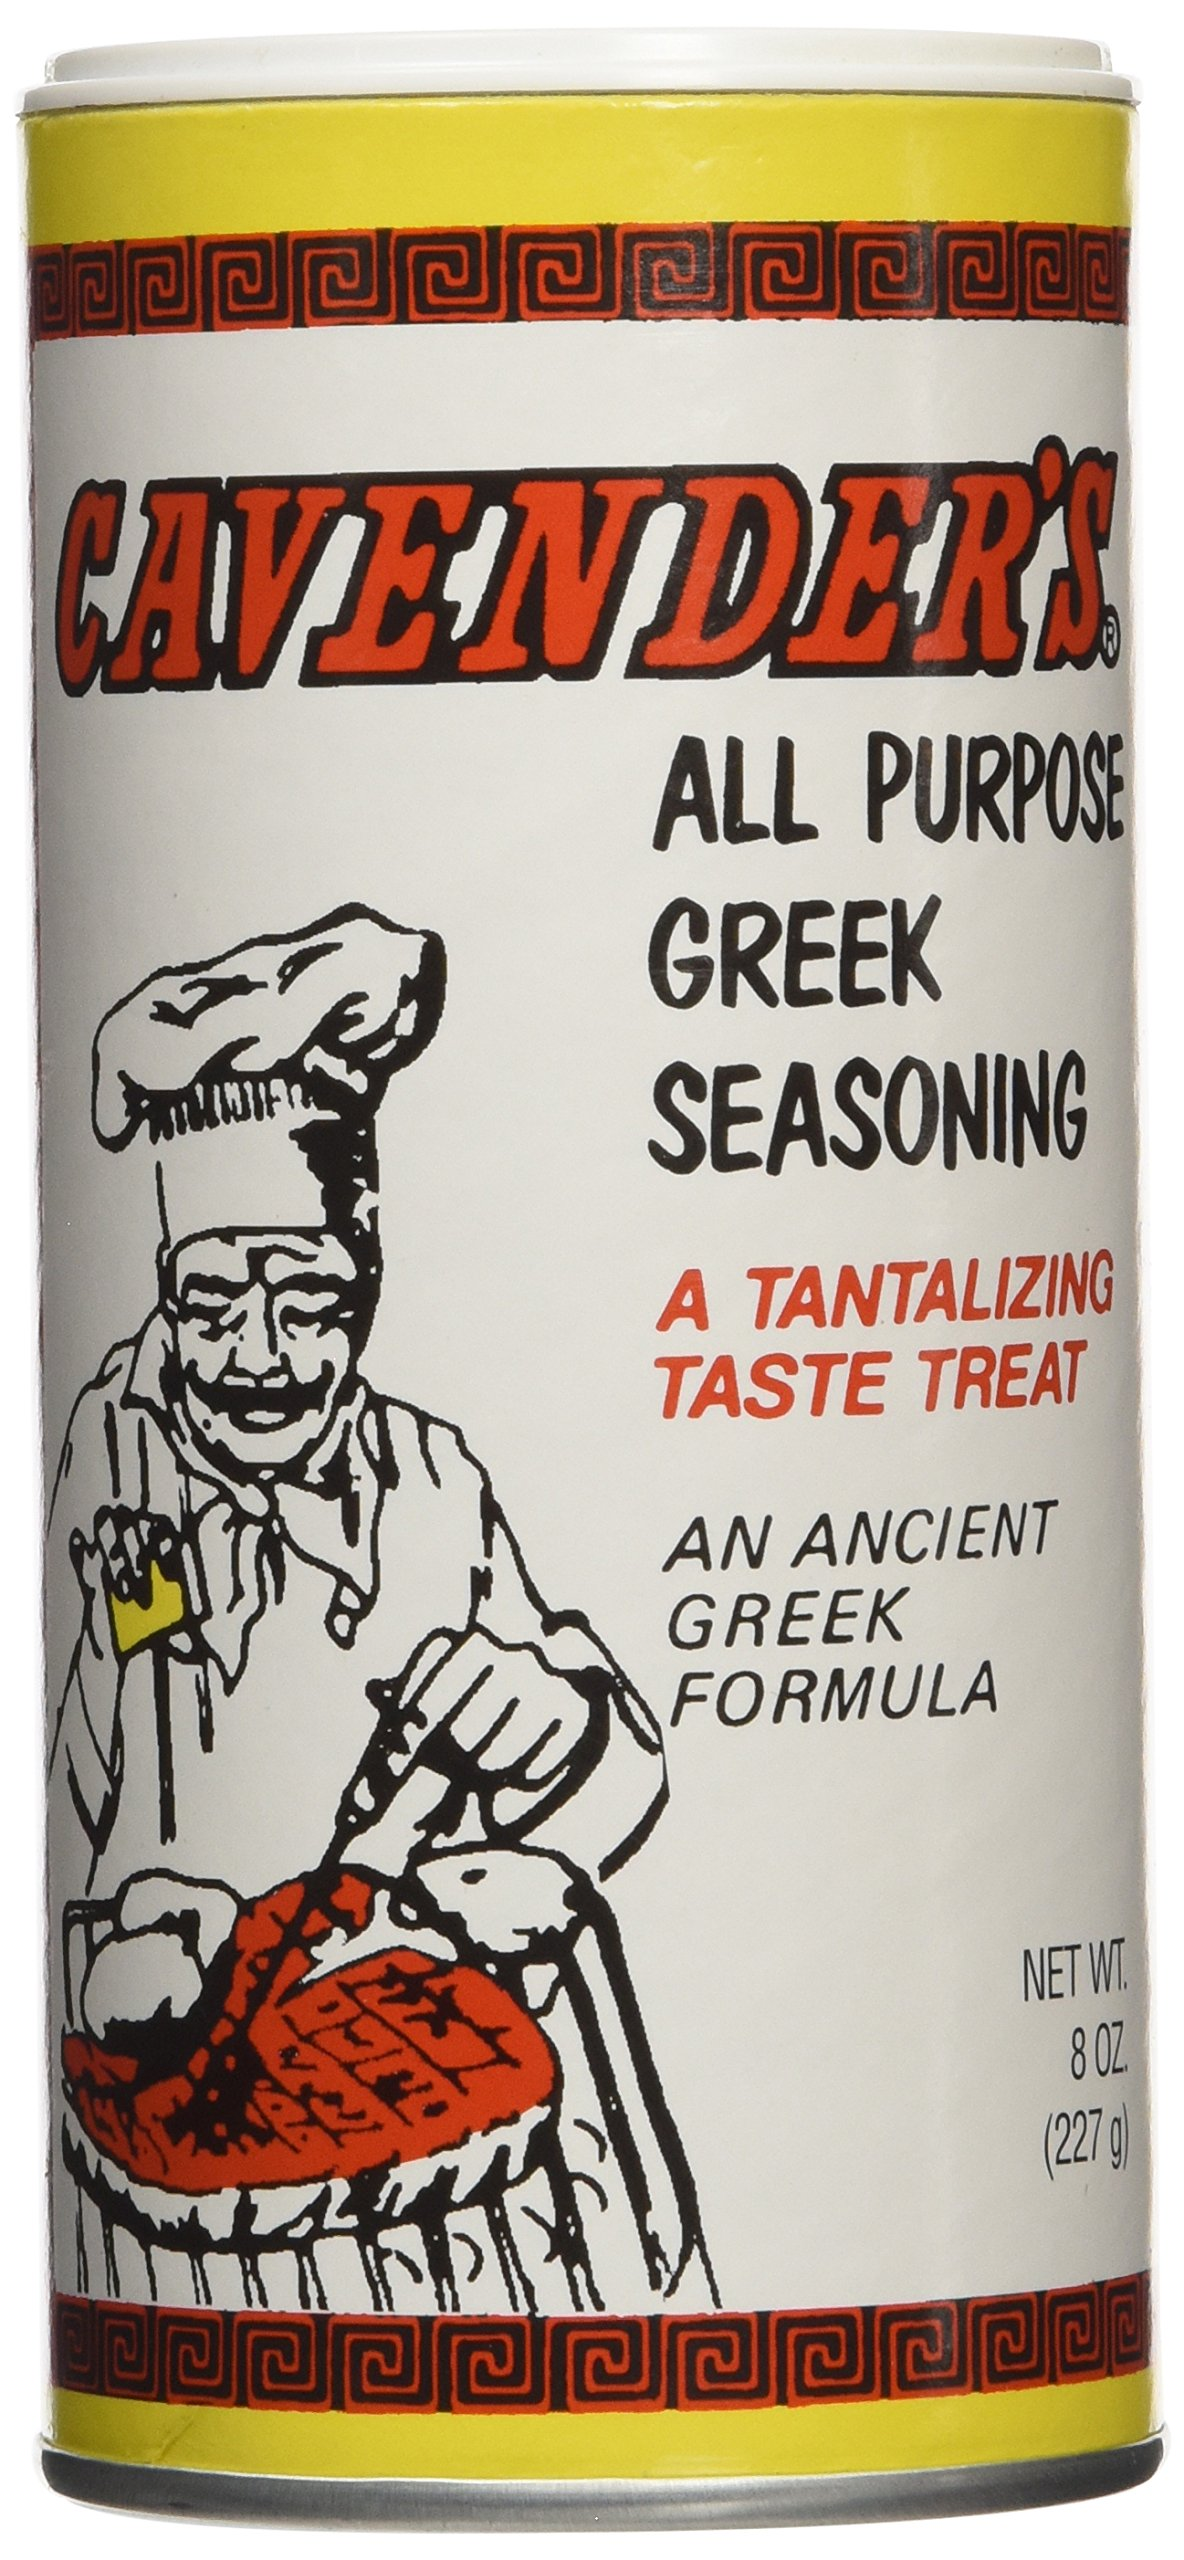 Cavenders All Purpose Greek Seasoning, 4 Pack (4 X 8oz)